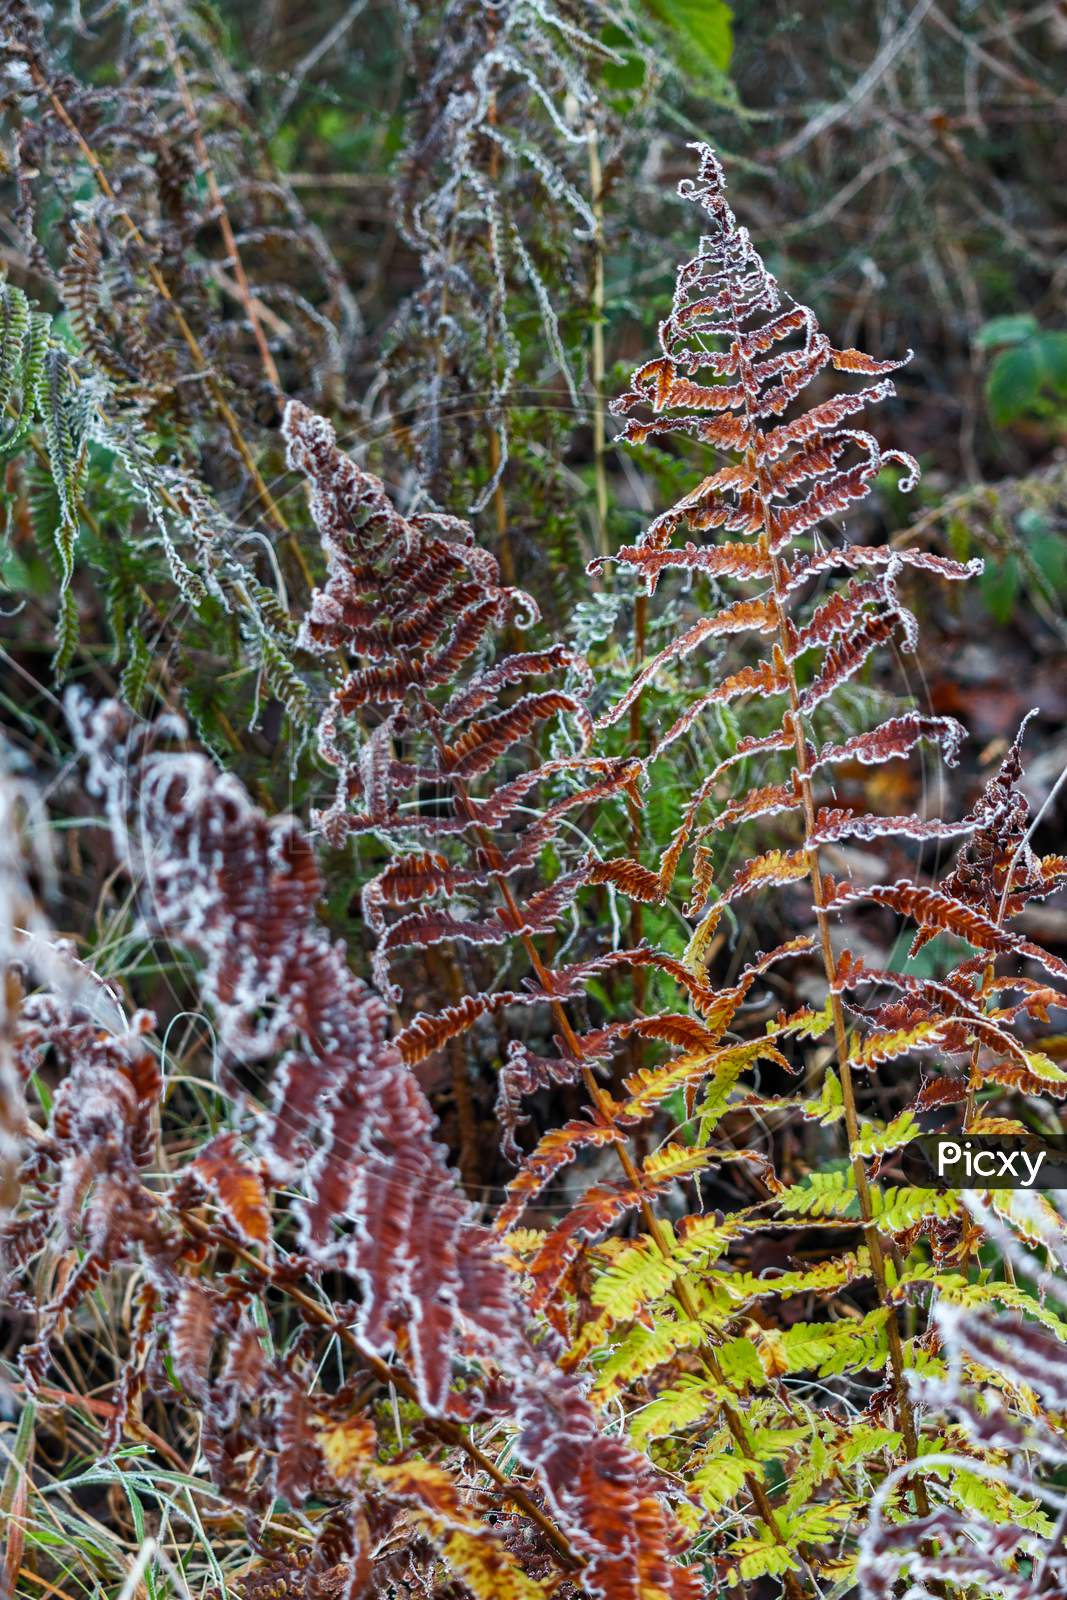 Colourful Decaying Fern Covered With Hoar Frost On A Winters Day